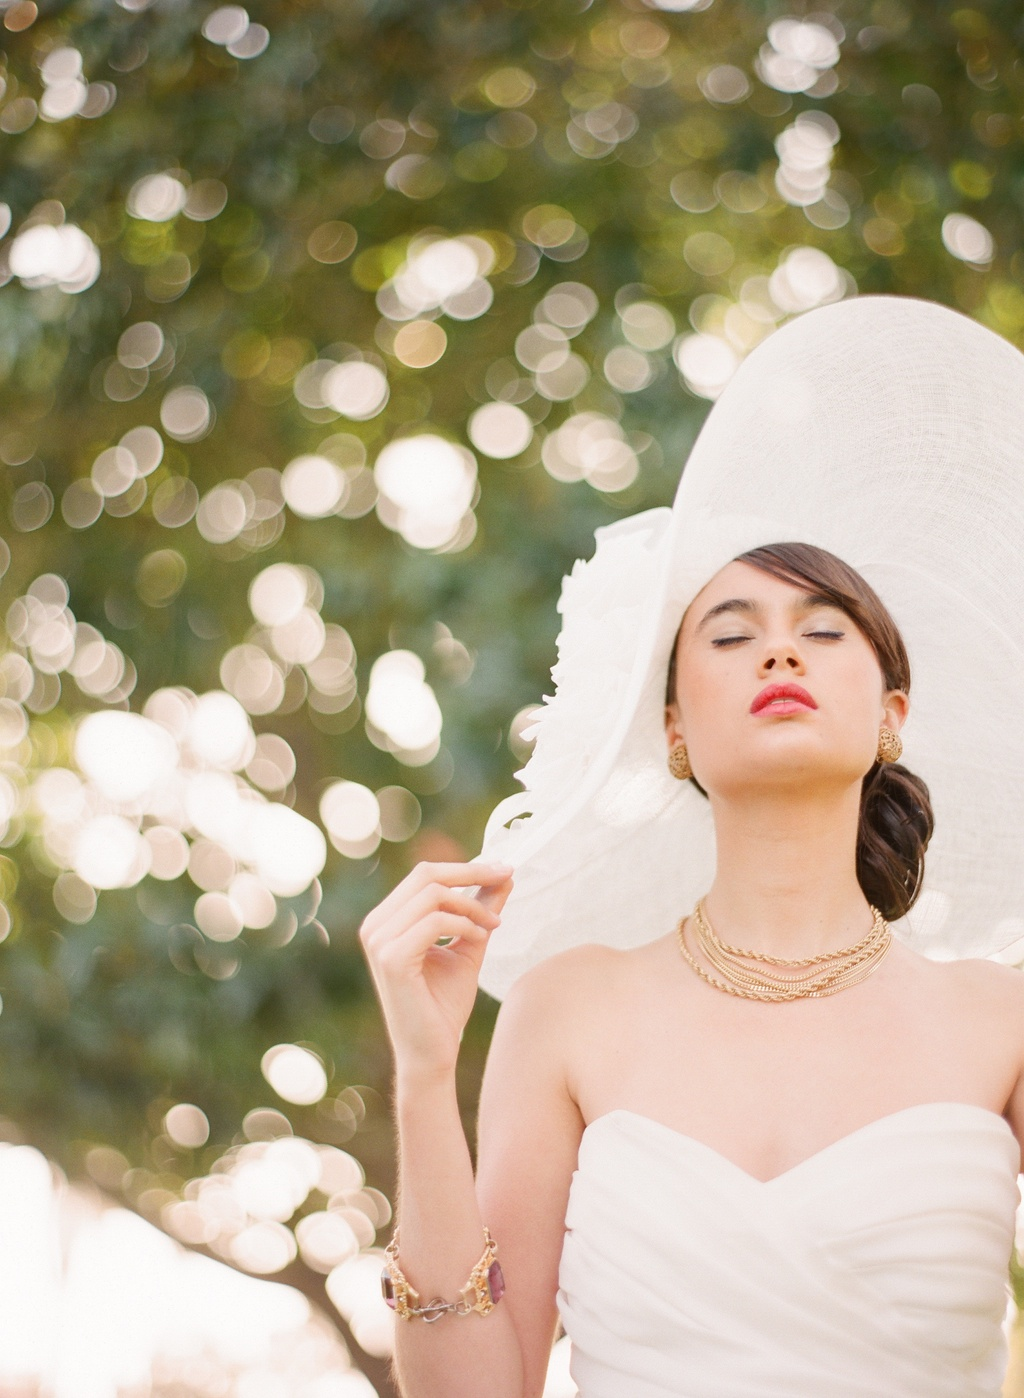 Styled-wedding-beaux-arts-tea-time-monique-lhuillier-santa-barbara-chic-bride-wedding-dress-hat-41.full